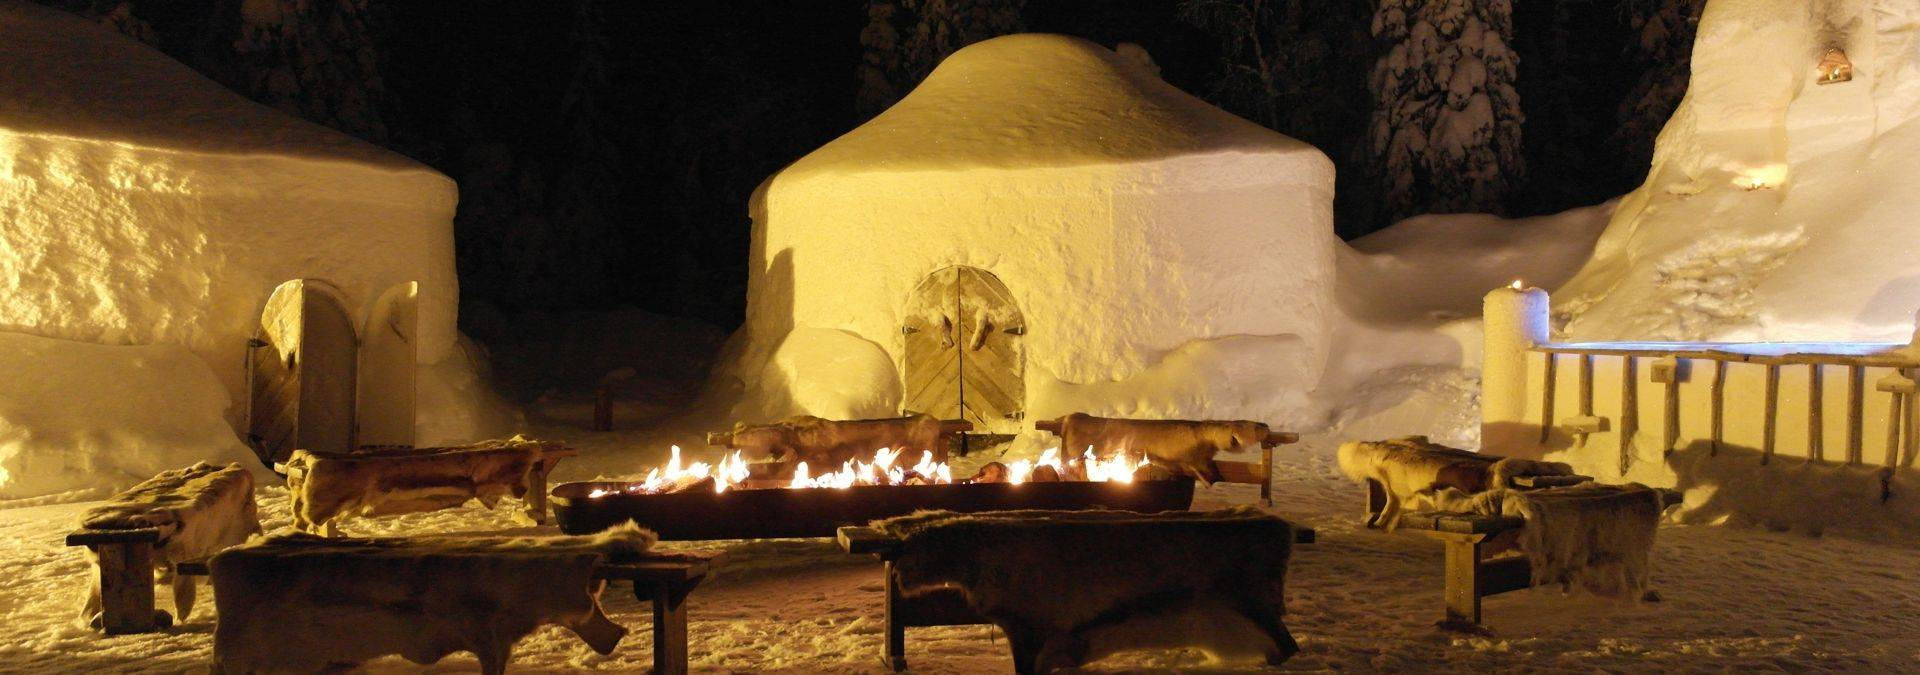 Iisakki Village - igloo night  1,credit Ruka Safaris.JPG